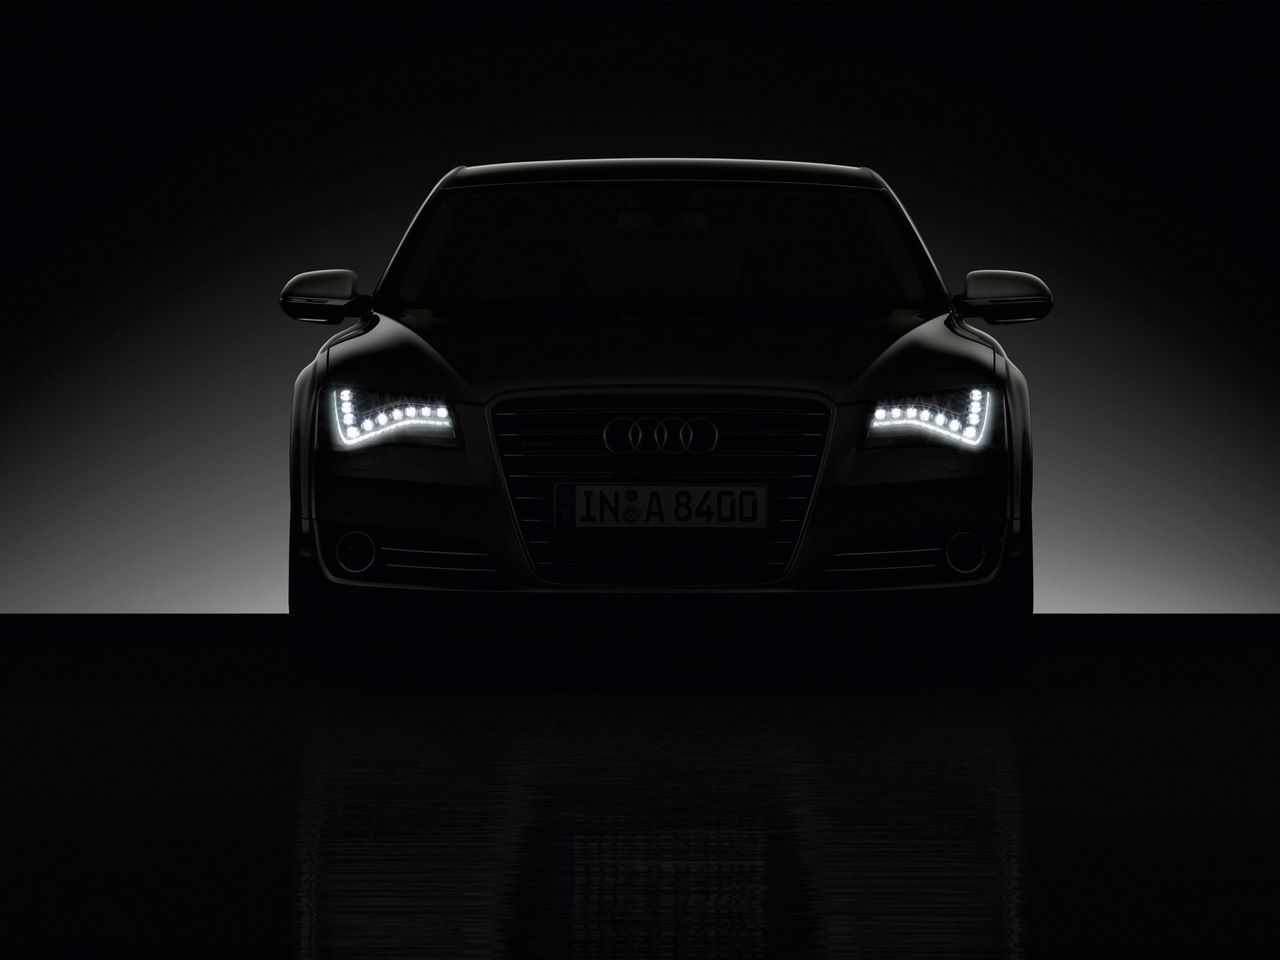 Audi A8 At Night Easily Recognizable By The Signature Led